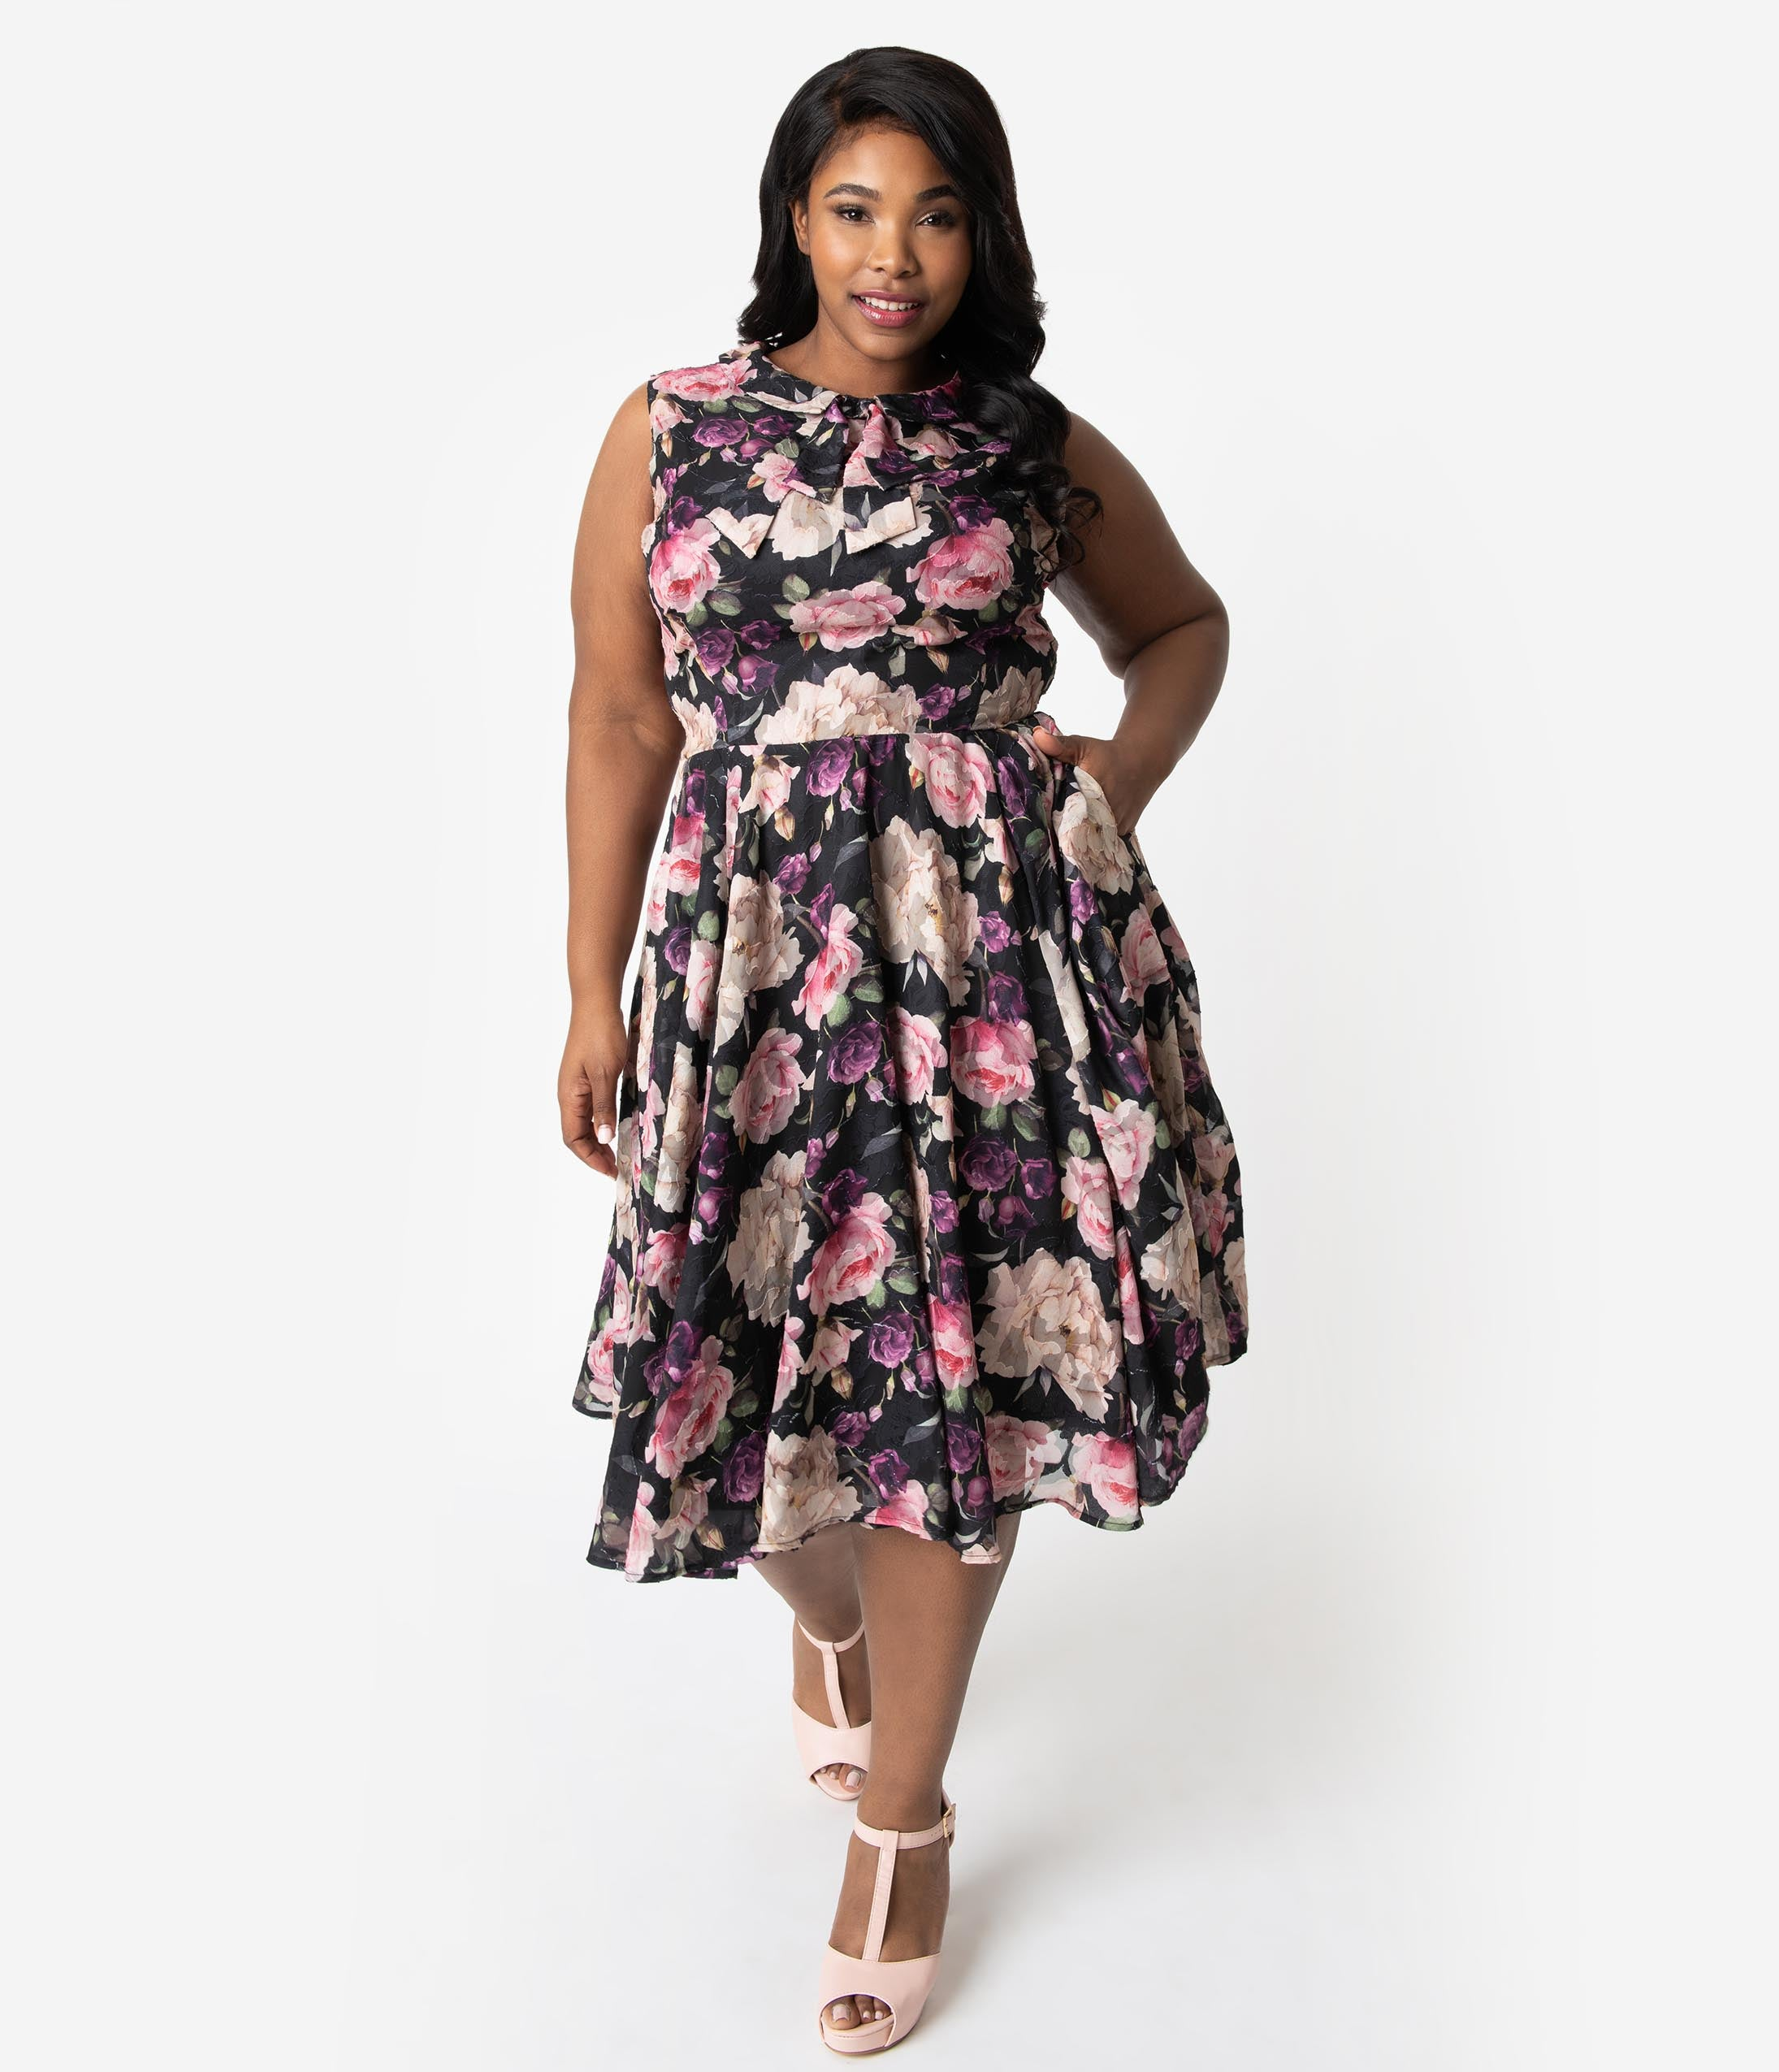 Plus Size A-line Natural Waistline Collared Floral Print Sleeveless Fall Swing-Skirt Fitted Pocketed Mesh Darts Vintage Dress With a Bow(s)